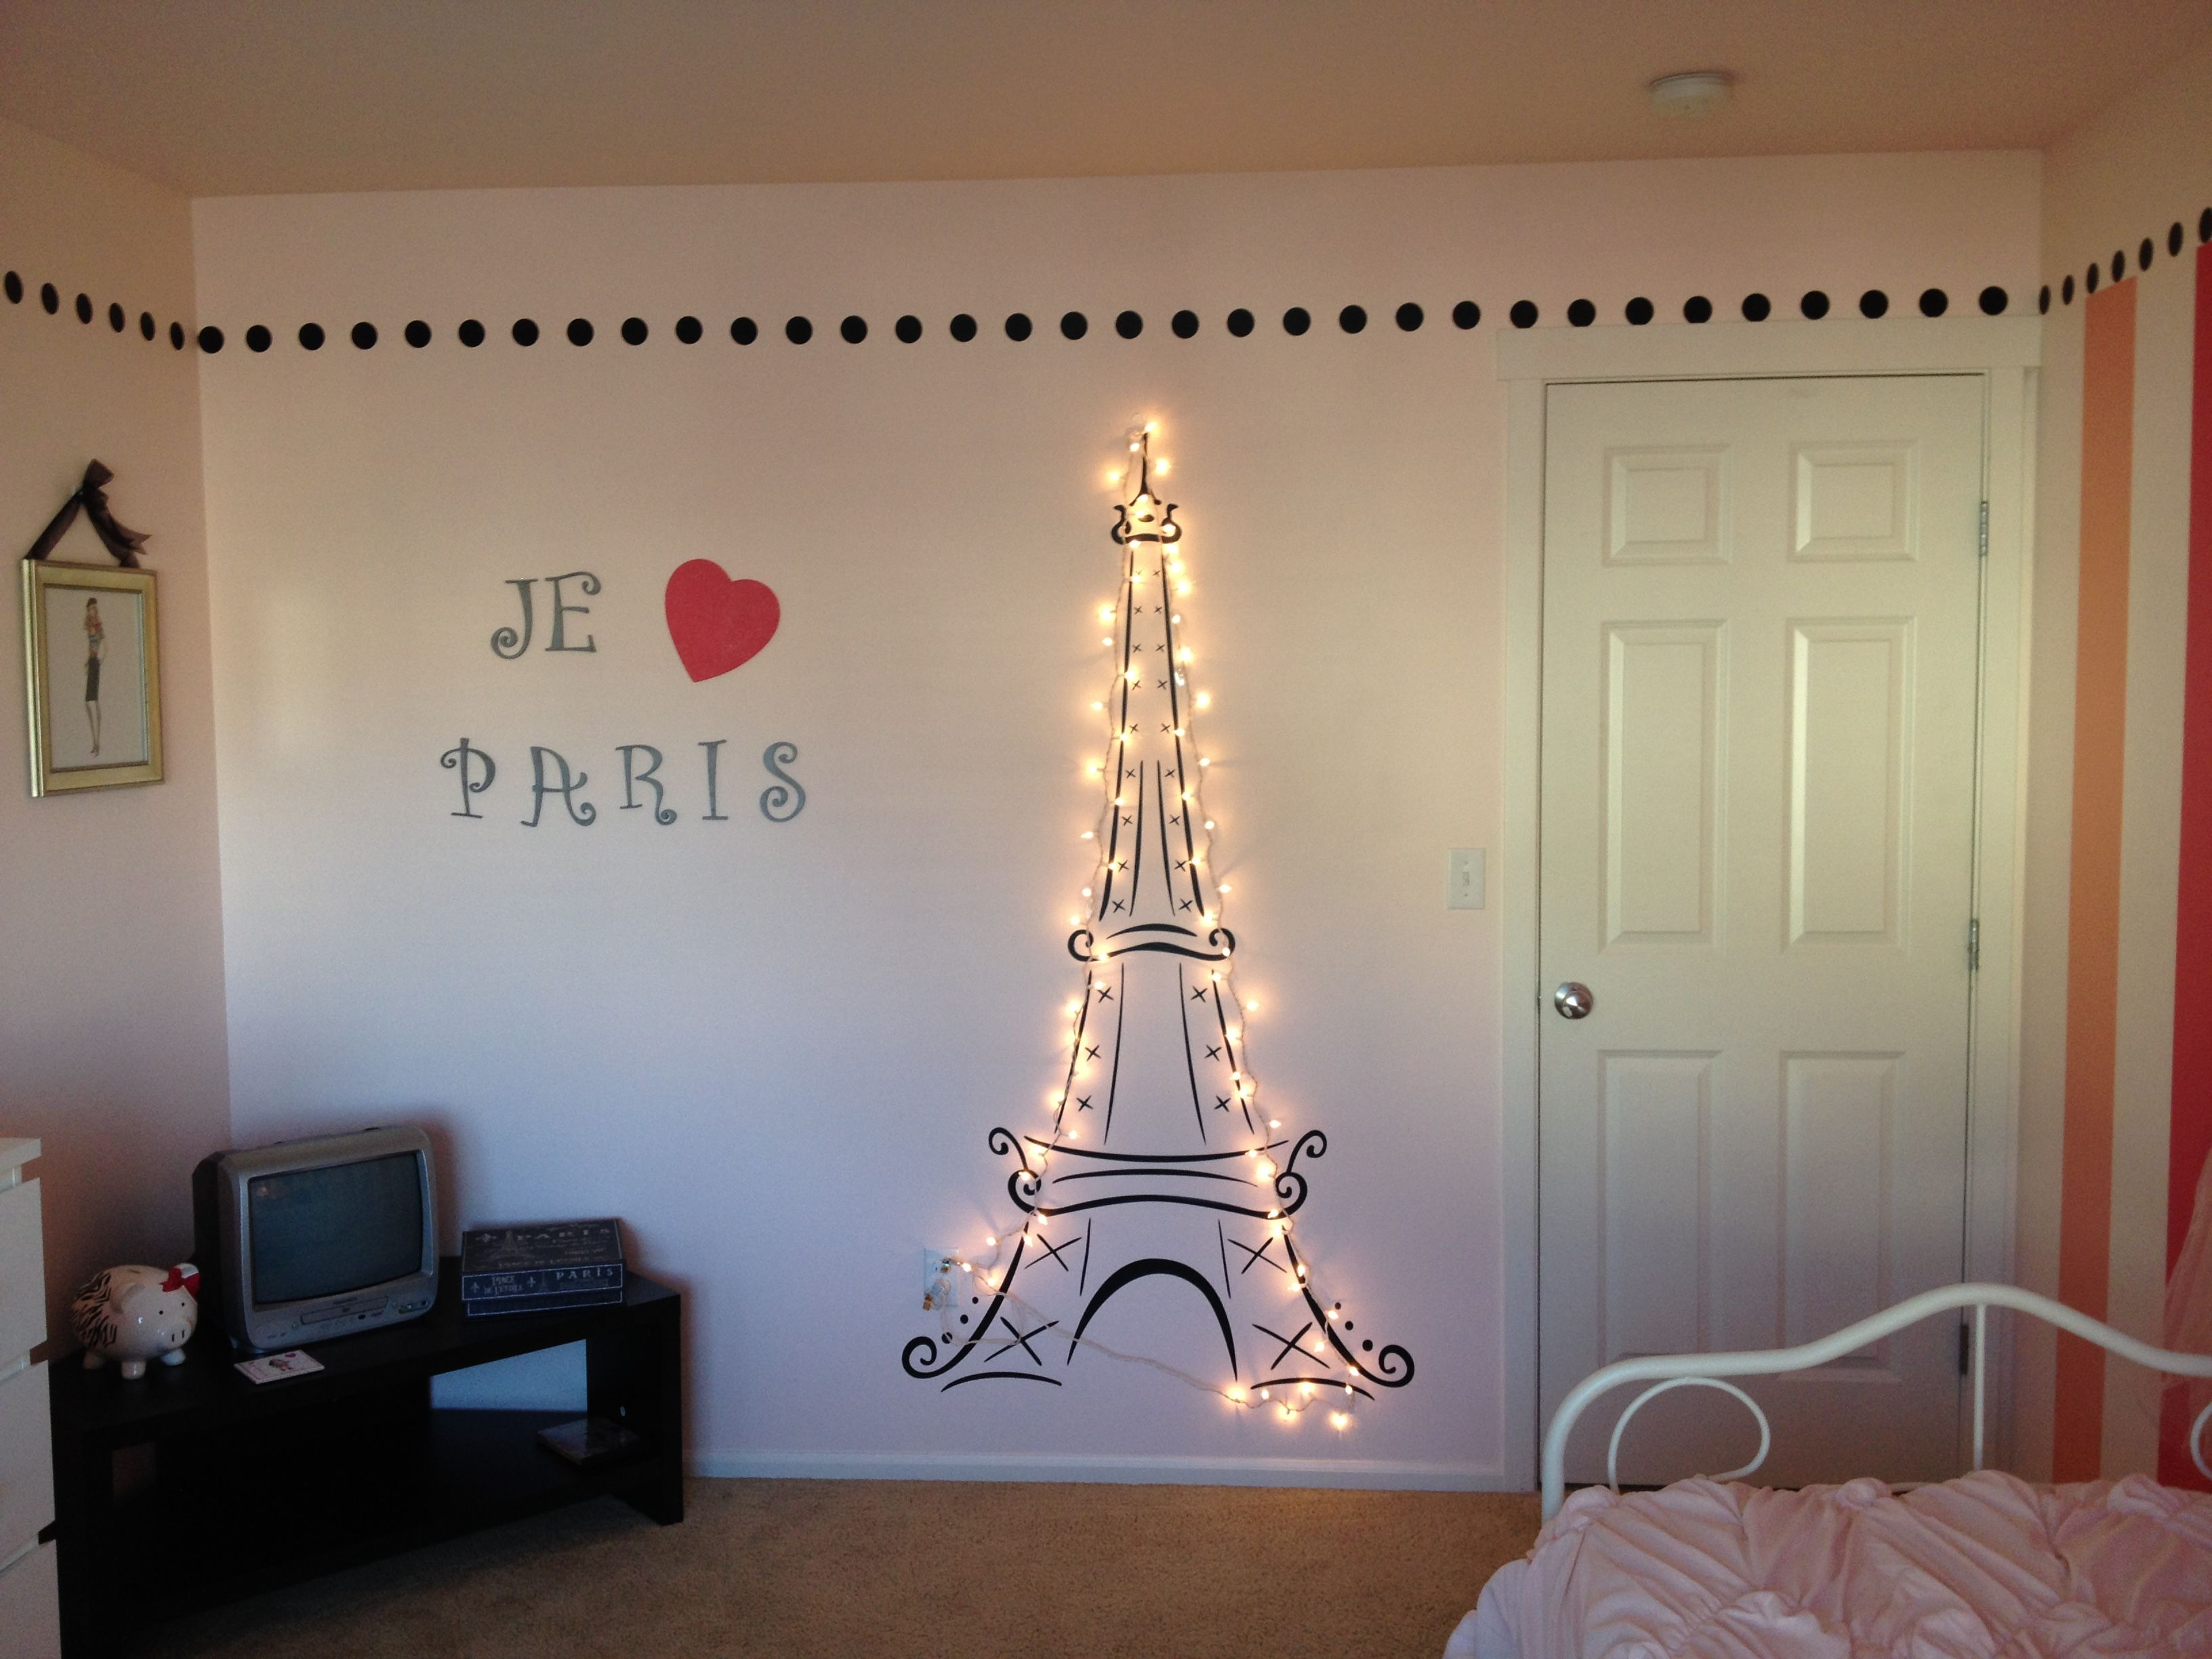 Lit eiffel tower for my daughter 39 s paris themed room paris themed girl 39 s bedroom pinterest - Eiffel tower decor for bedroom ...